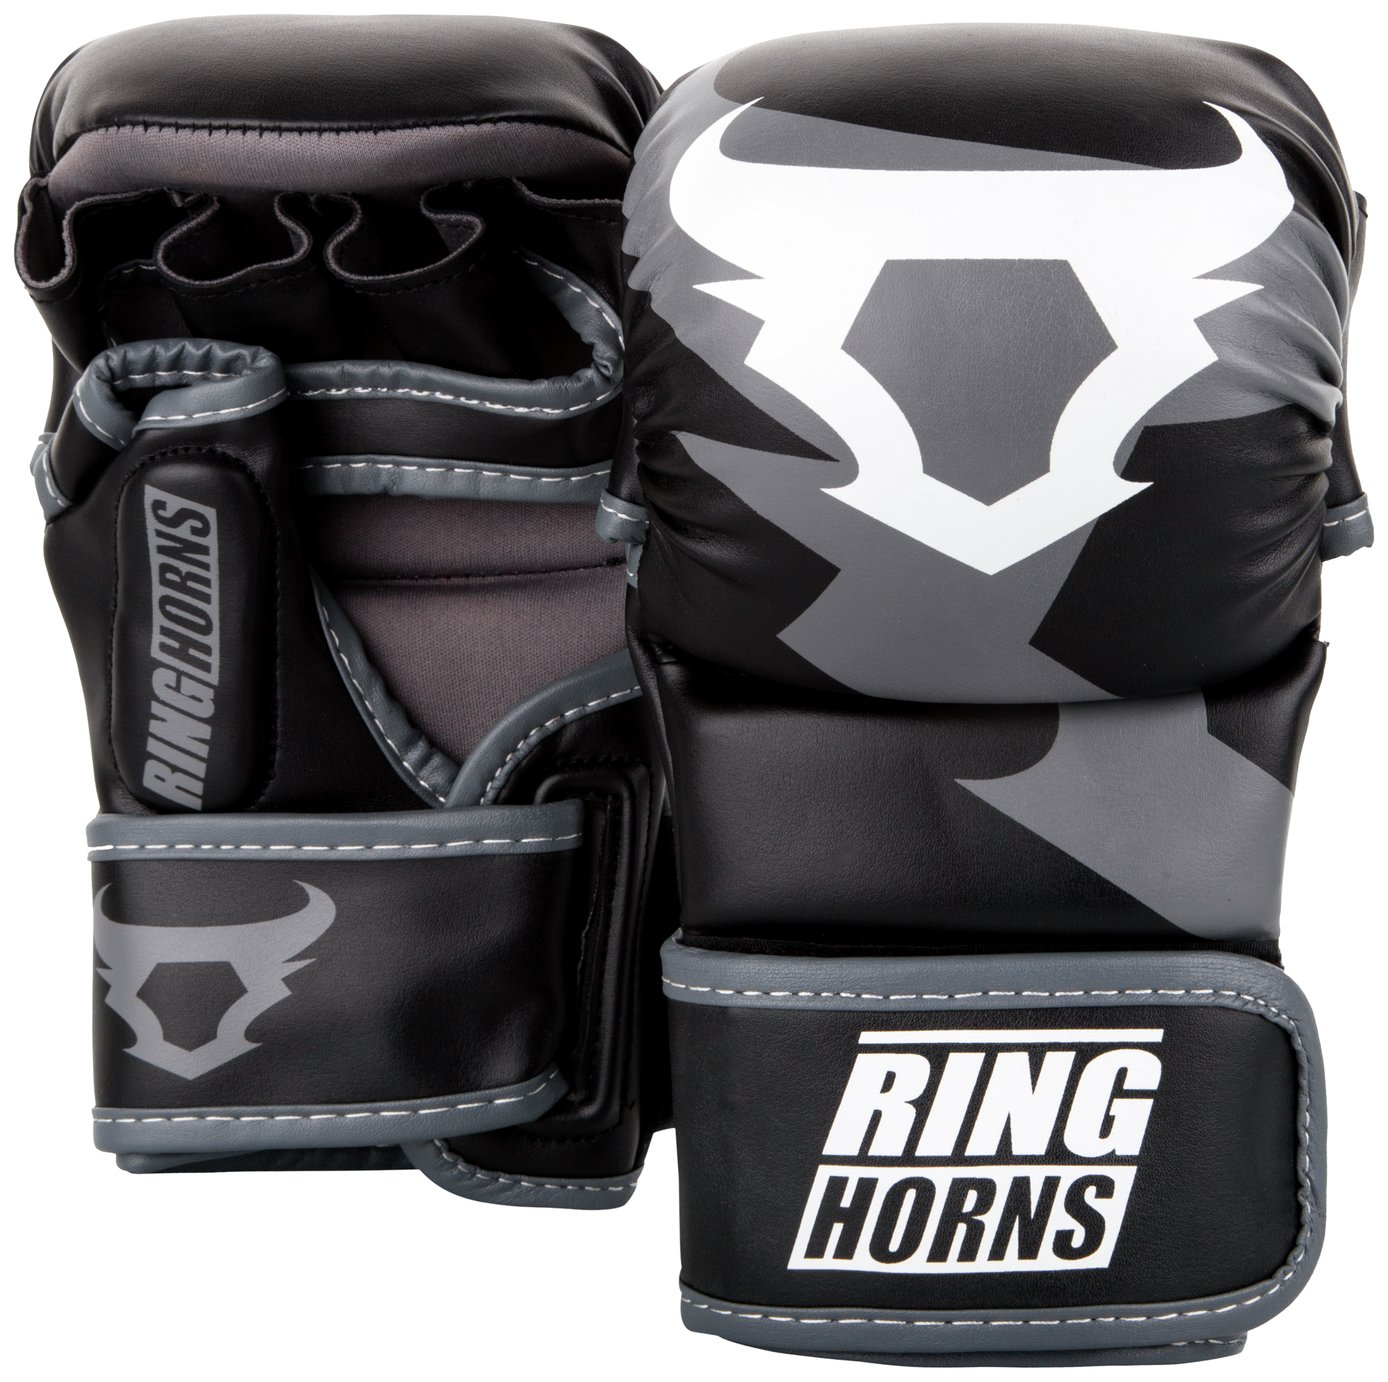 Fitness Gloves Argos: Training Gloves: Find Offers Online And Compare